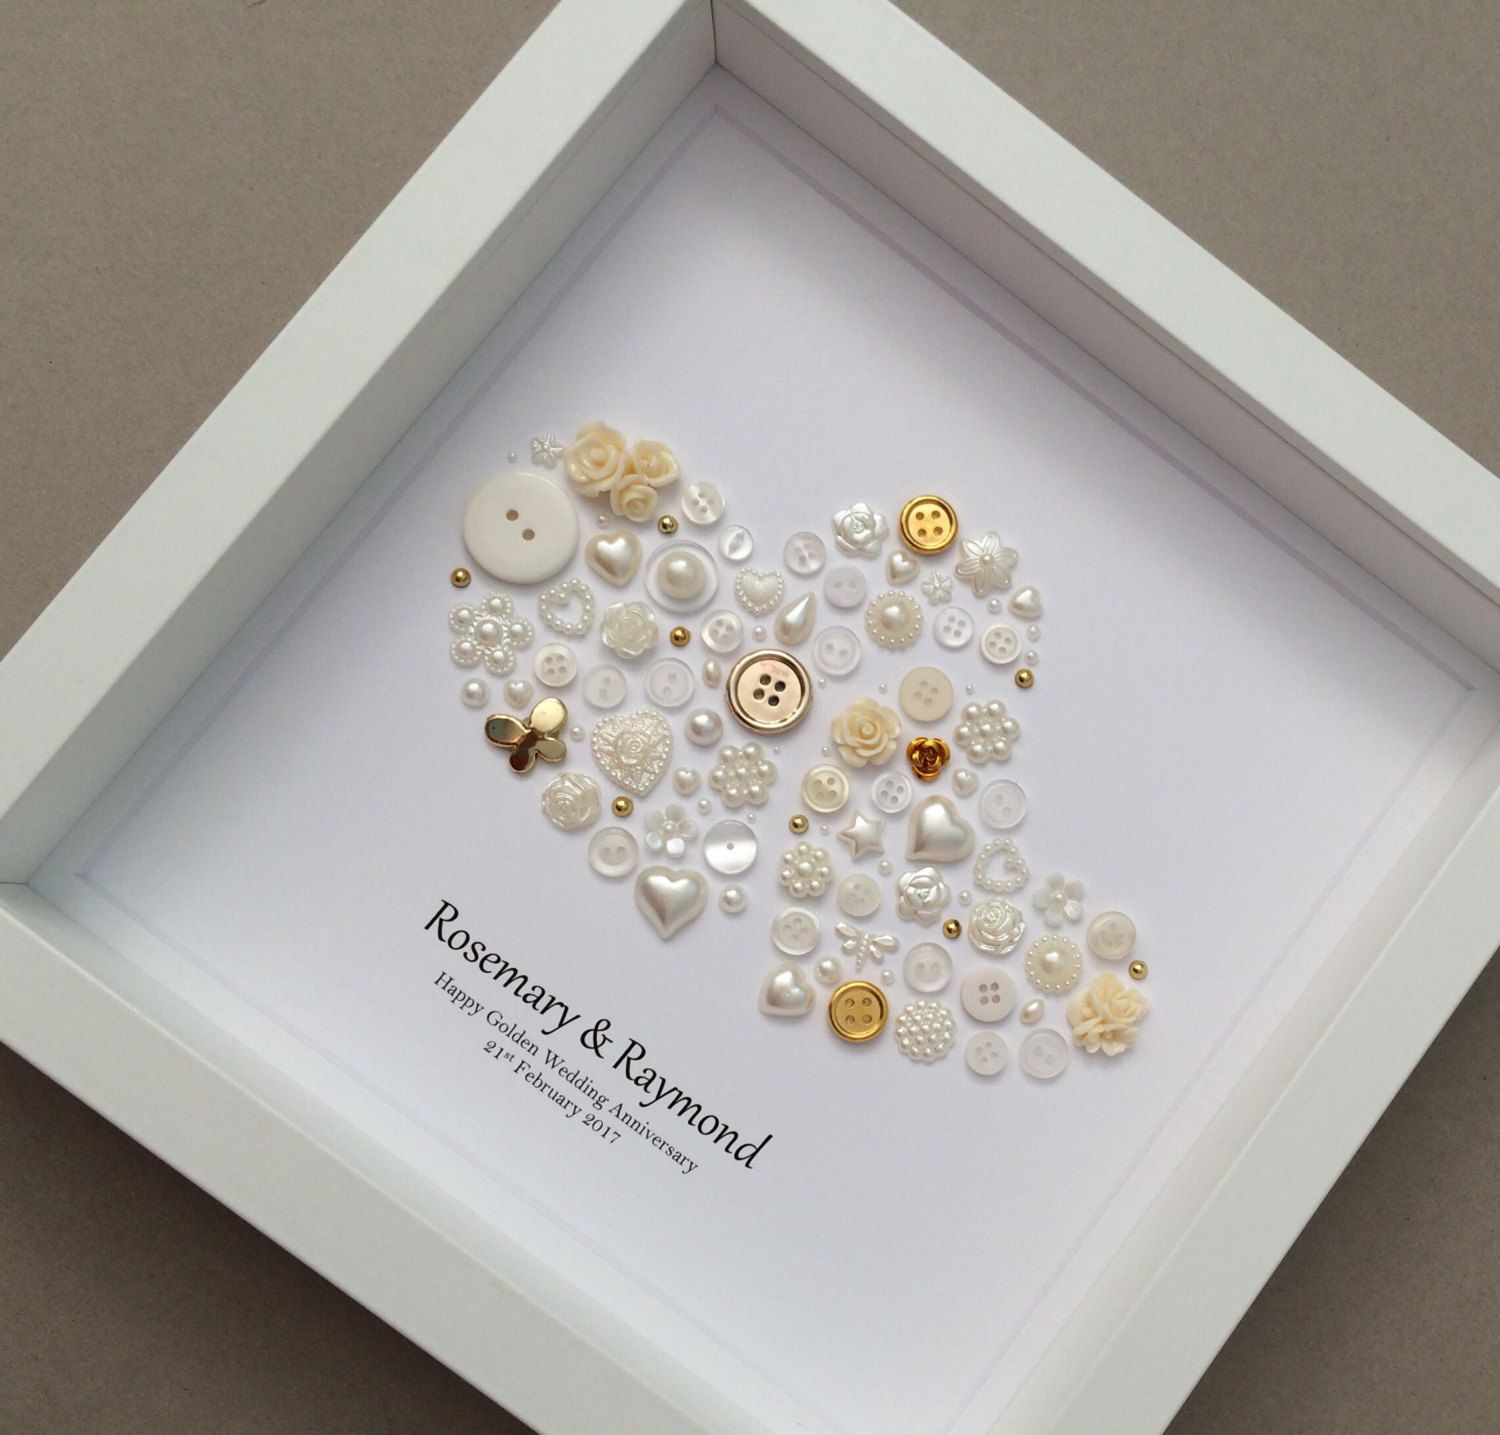 Gifts For Grandparents 50th Wedding Anniversary: 50th Anniversary Gift, Golden Wedding Anniversary, Golden